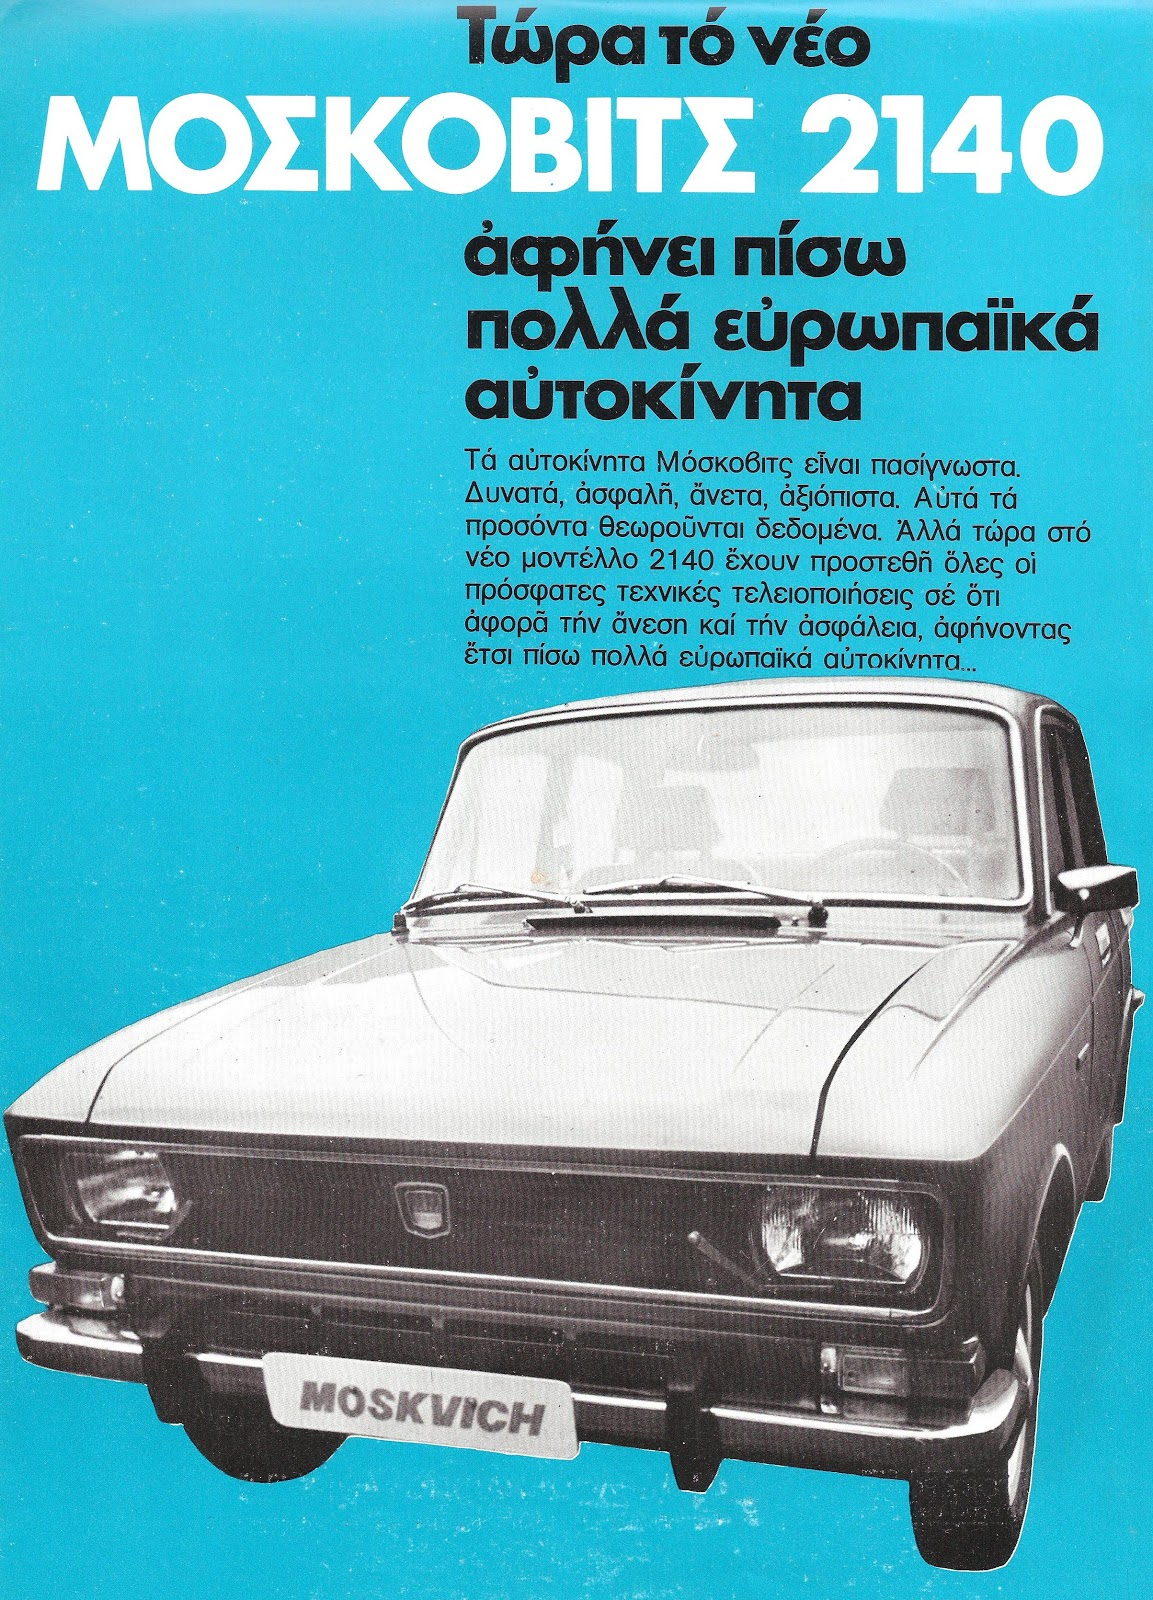 1976-1986-Moskvich-2140-Greece.jpg